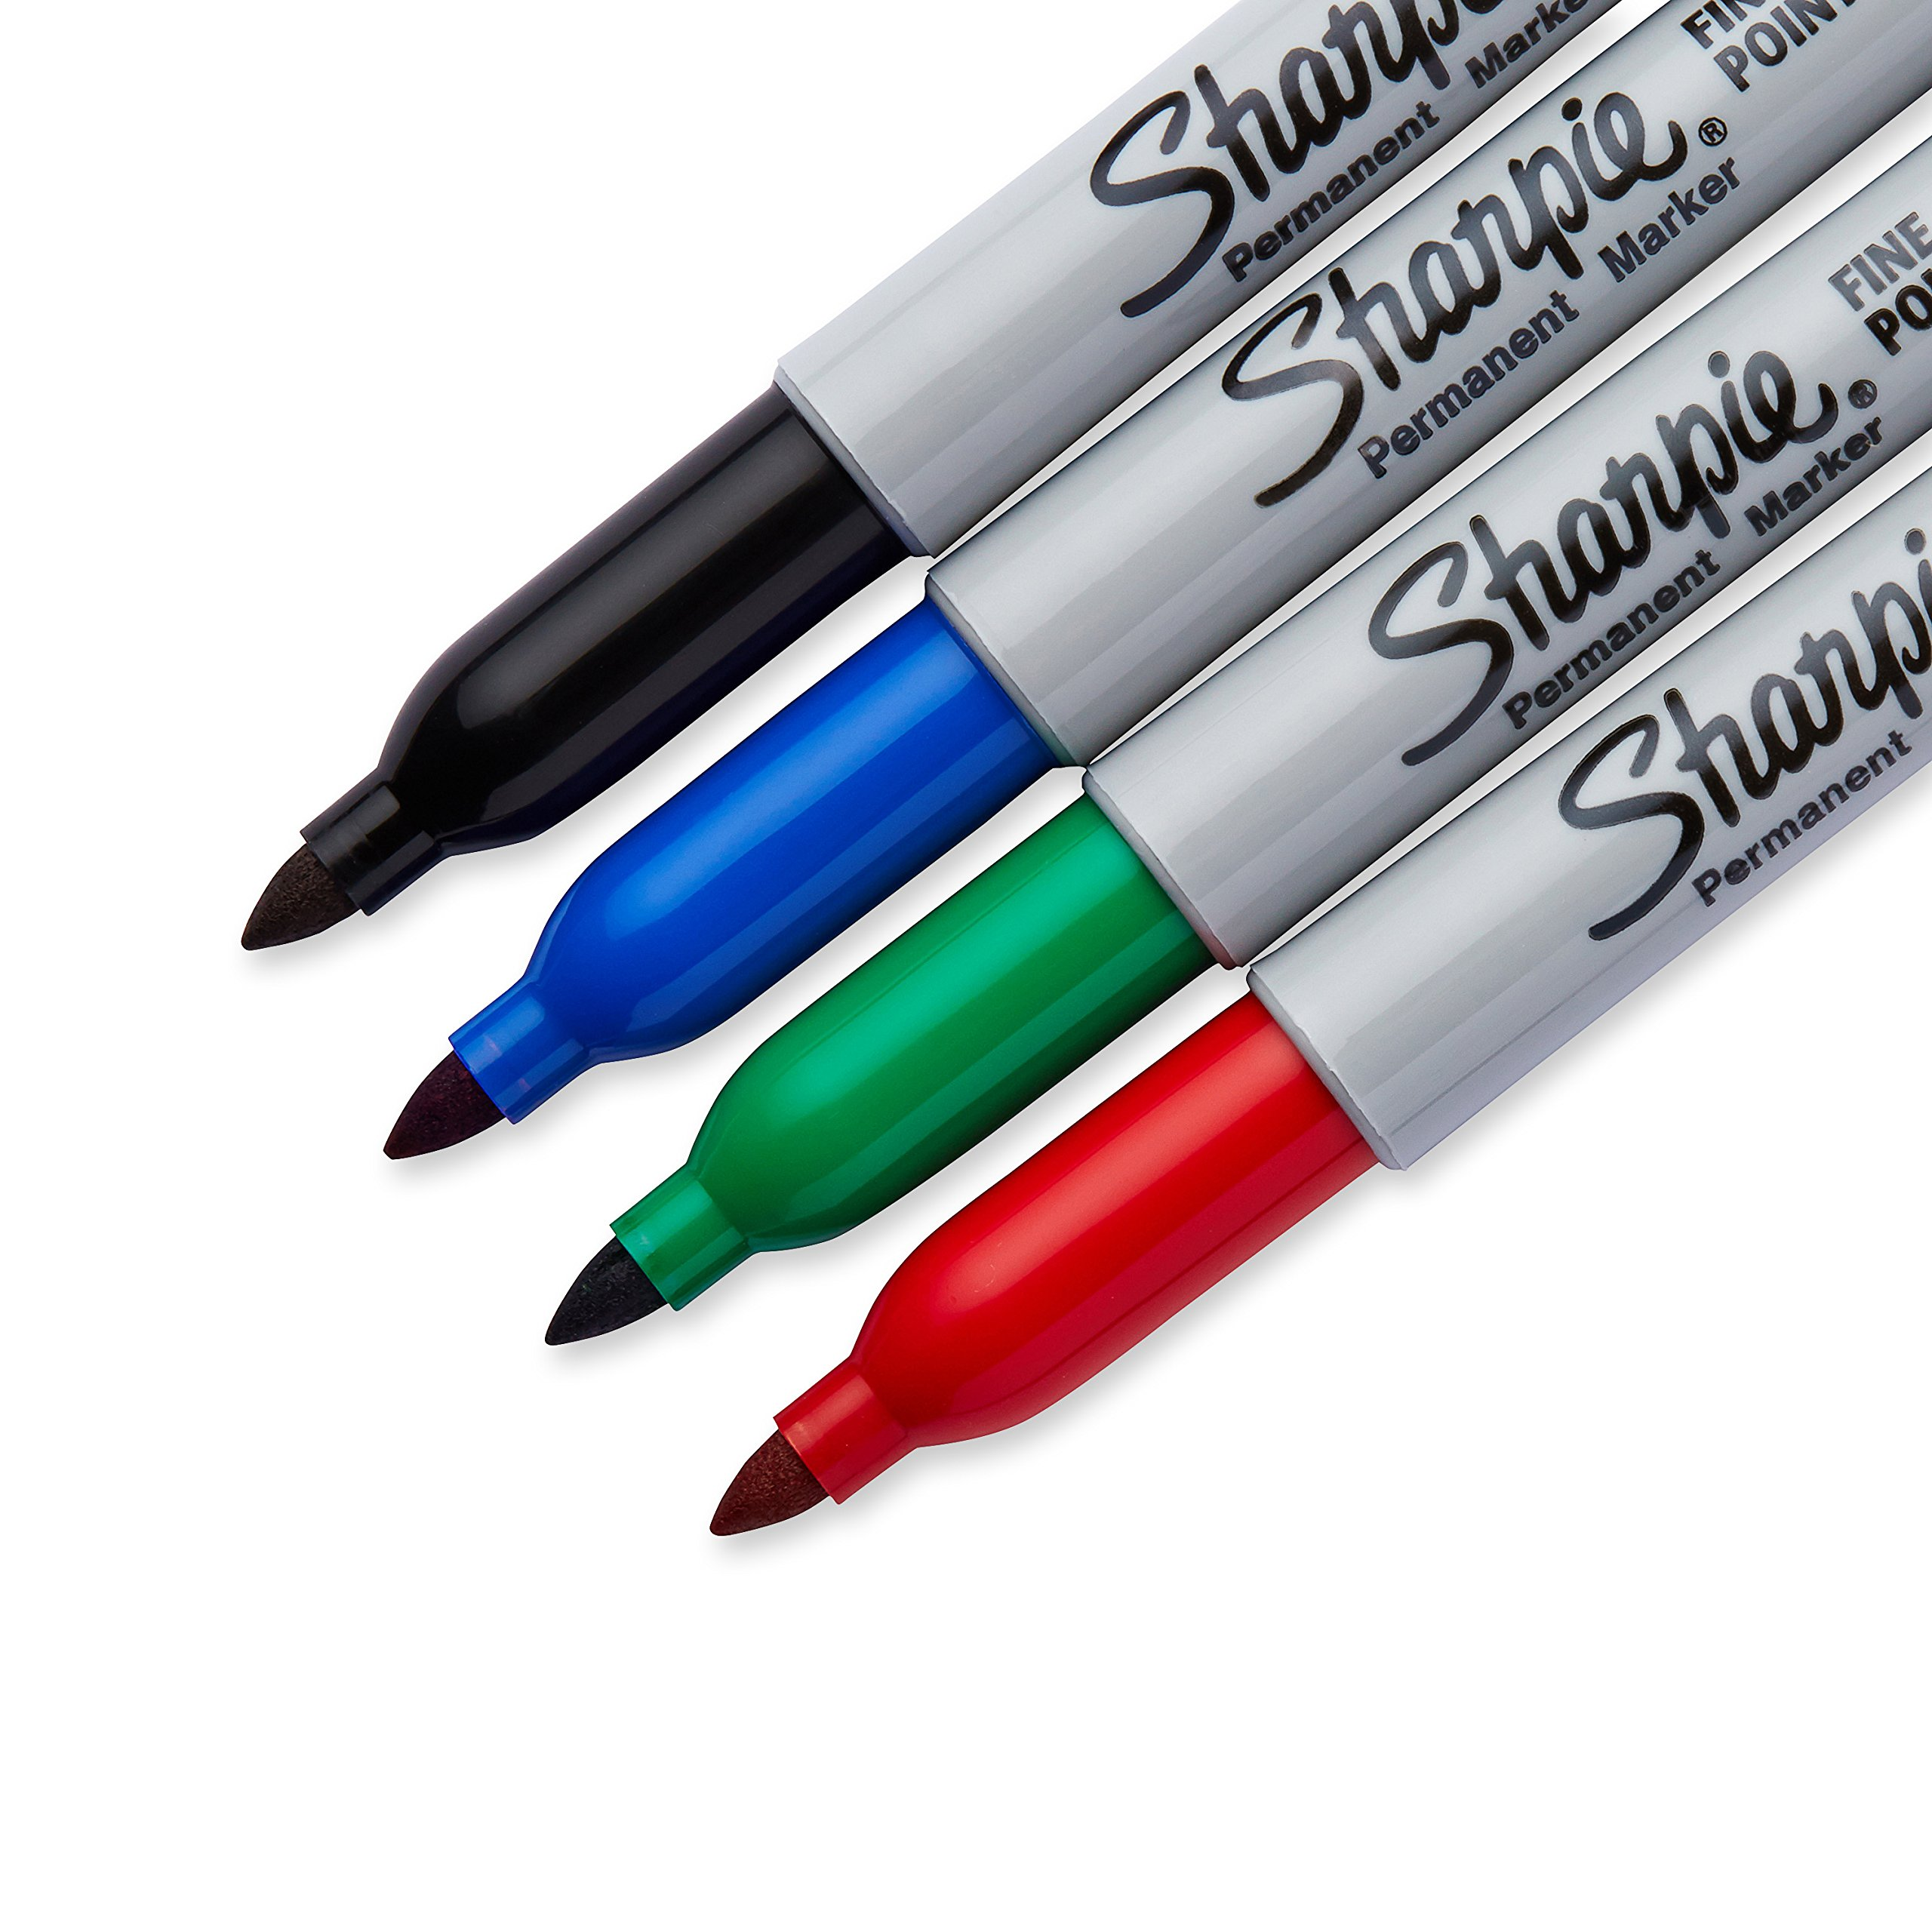 Sharpie Permanent Markers, Fine Point, Assorted Colors, 36-Pack (1921559) by Sharpie (Image #3)